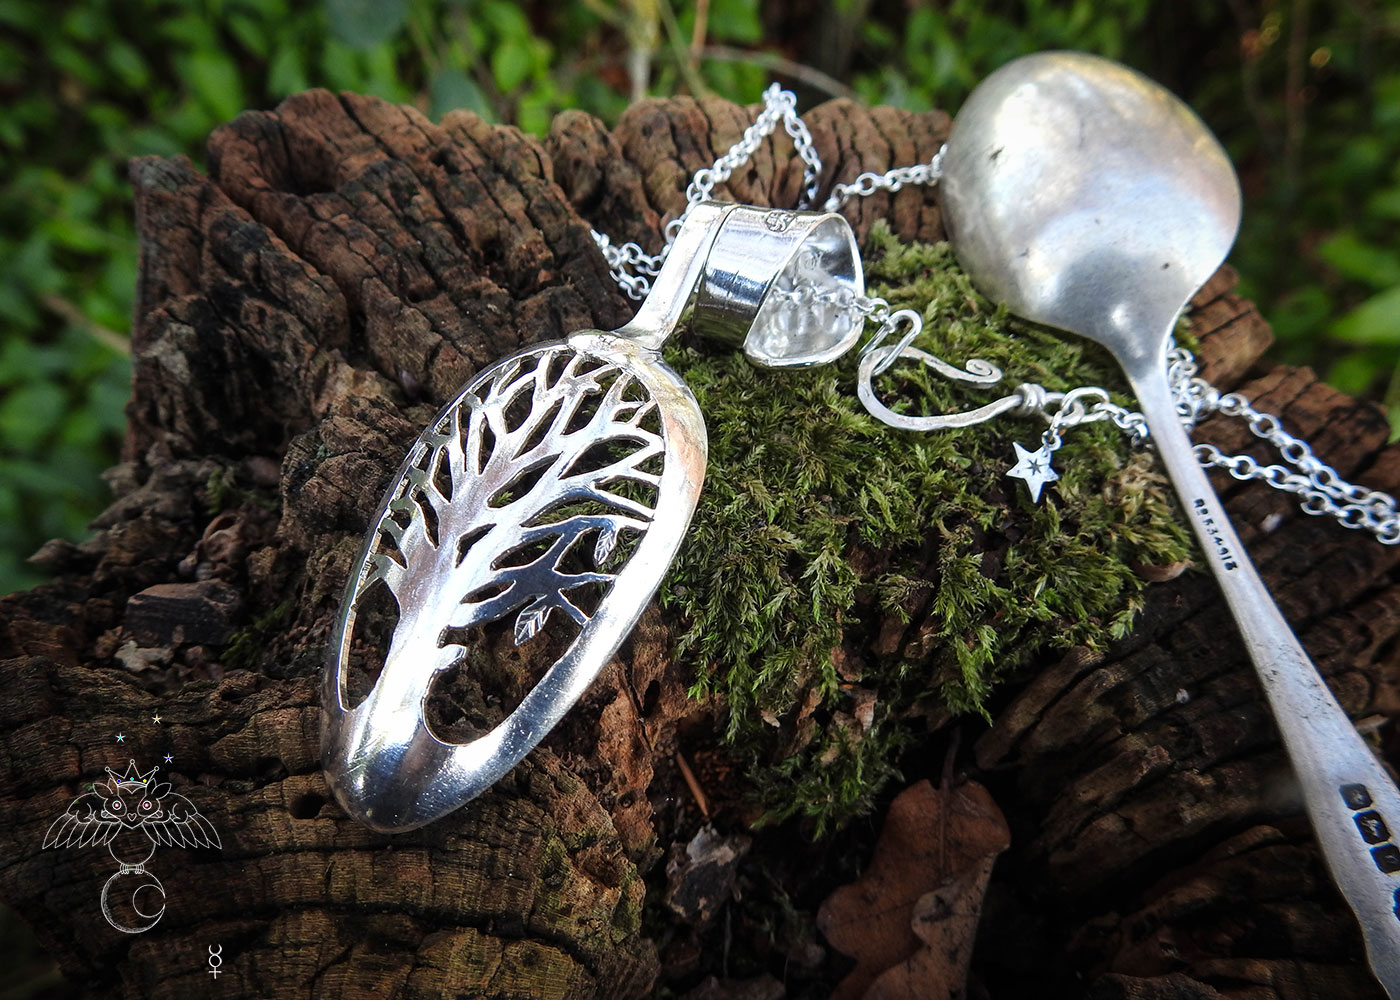 Tree of life spoon jewelry - handmade and recycled silver Victorian teaspoon